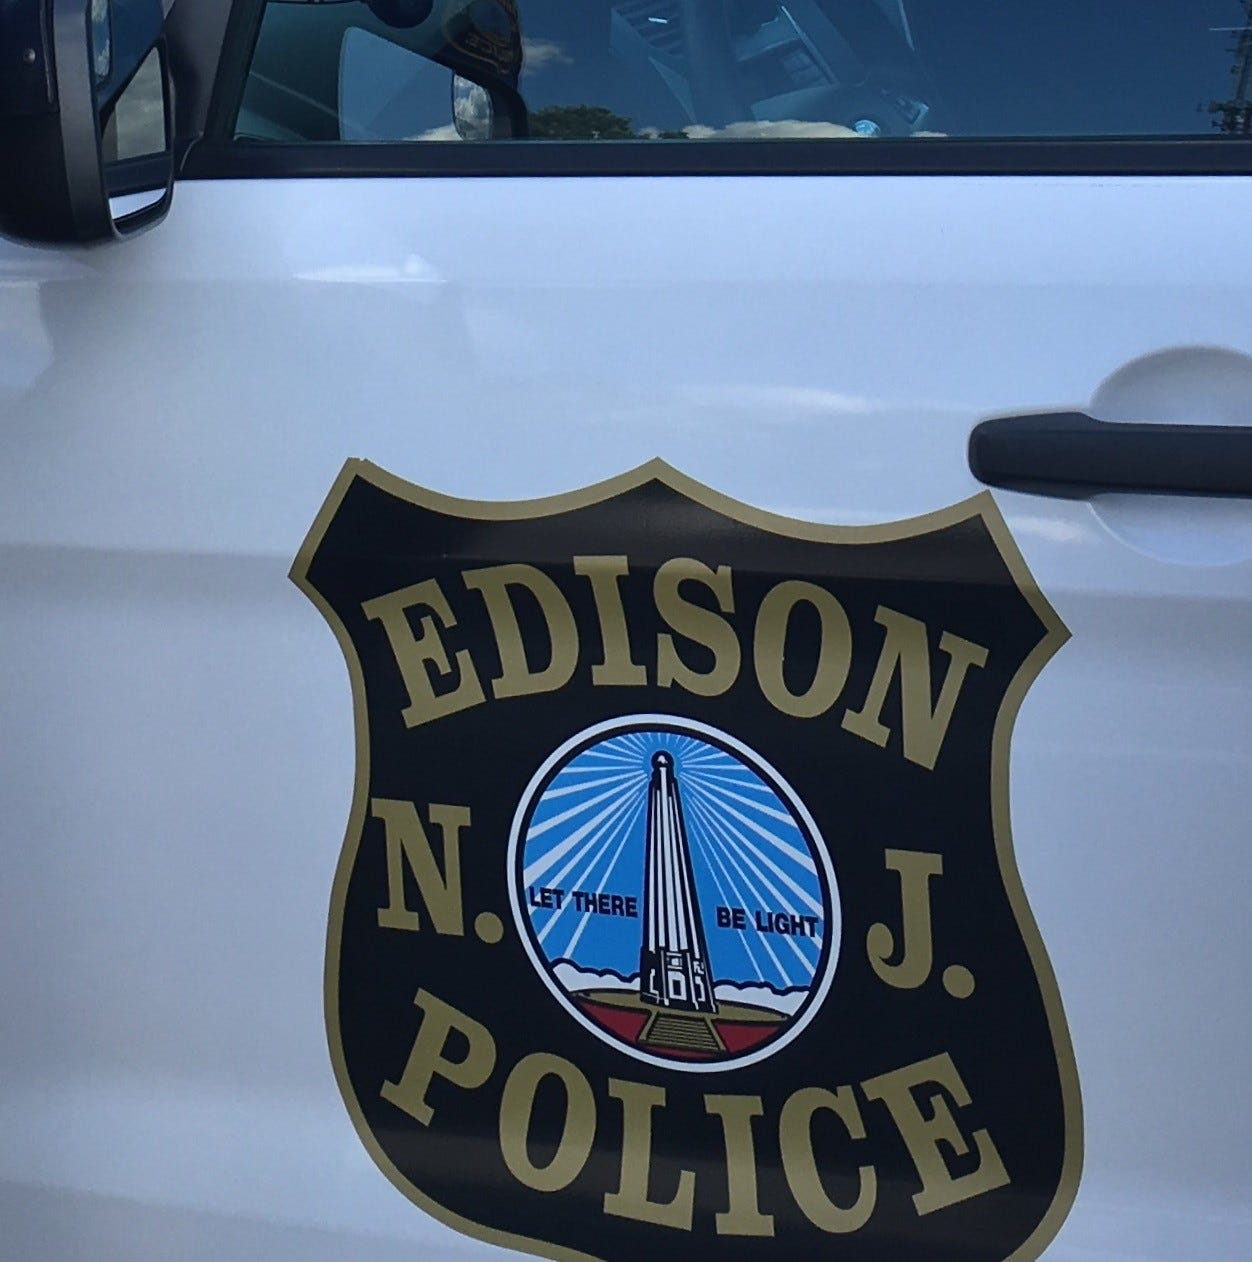 Edison police warn residents about fake robo-texts alleging spike in home robberies